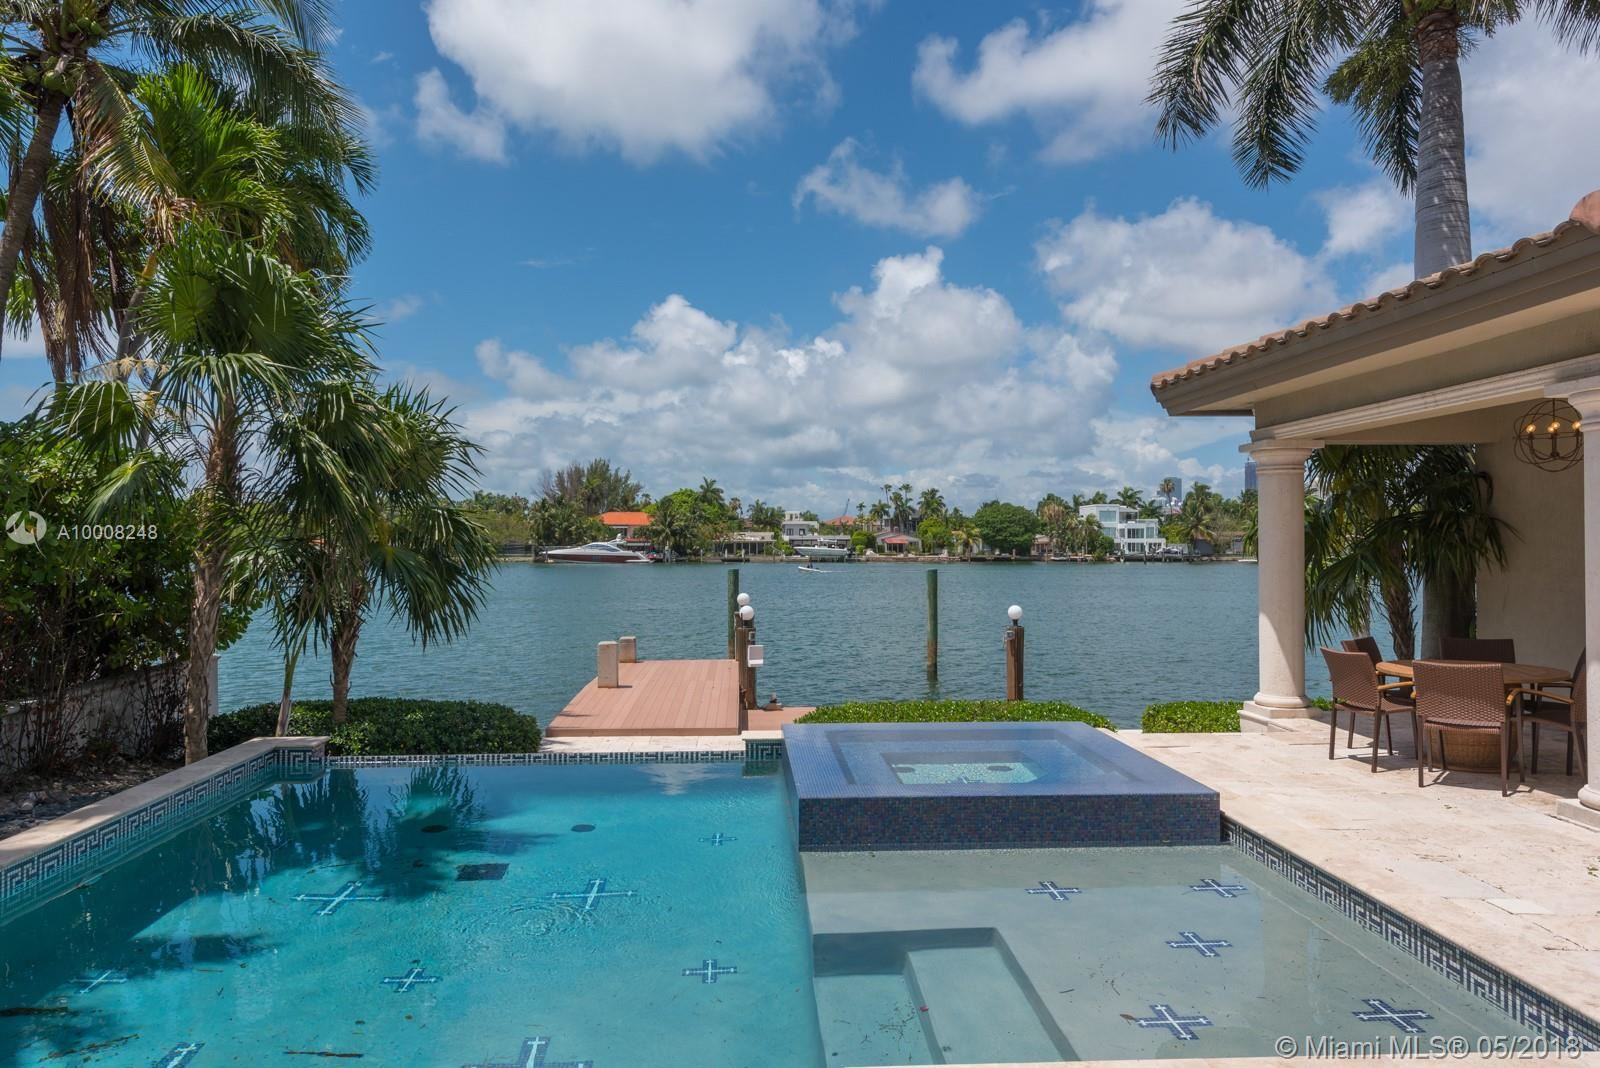 Photo 25 of Listing MLS a10008248 in 280 S HIBISCUS DR Miami Beach FL 33139